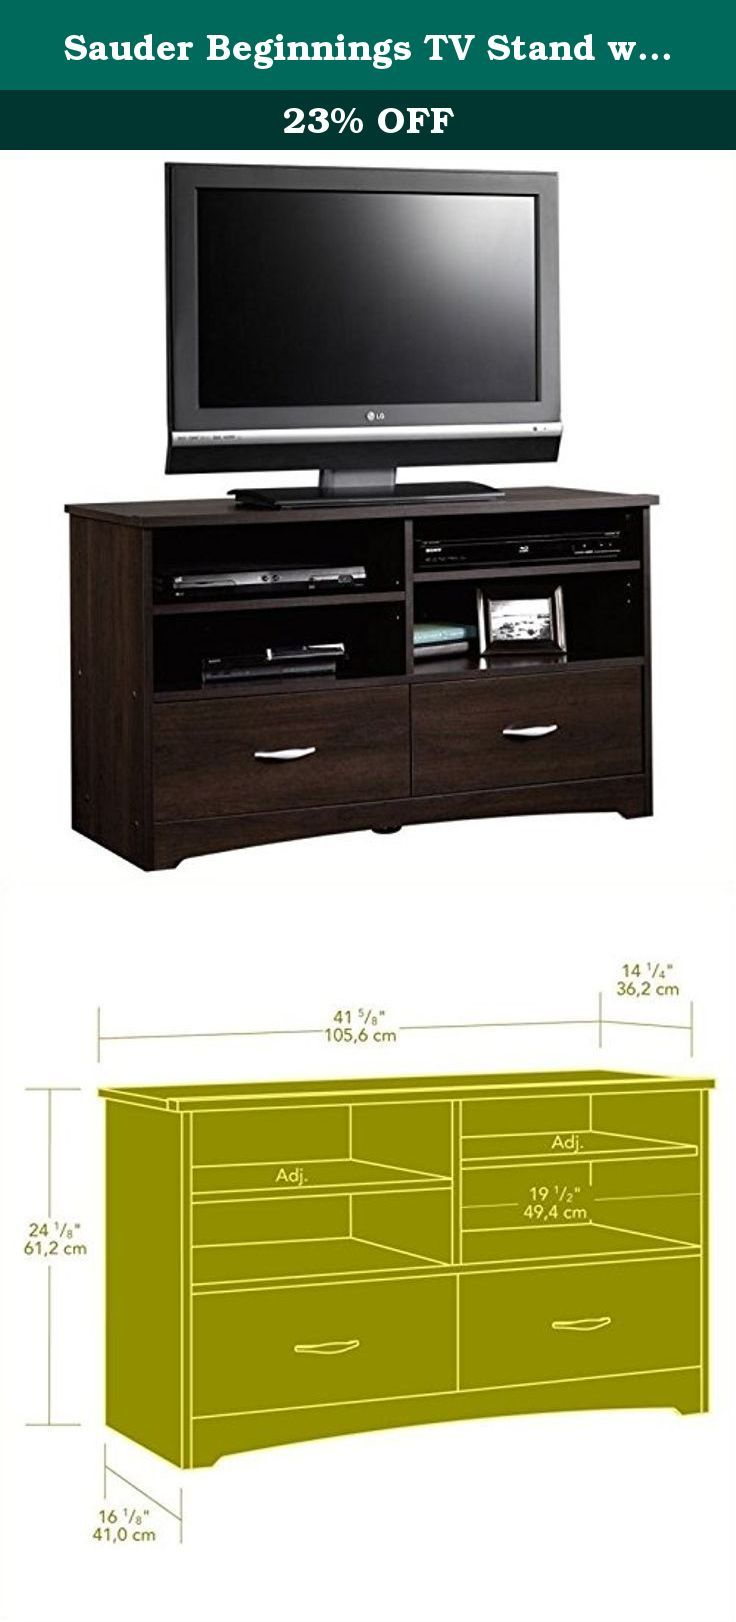 Sauder Beginnings Tv Stand With Drawers Cinnamon Television